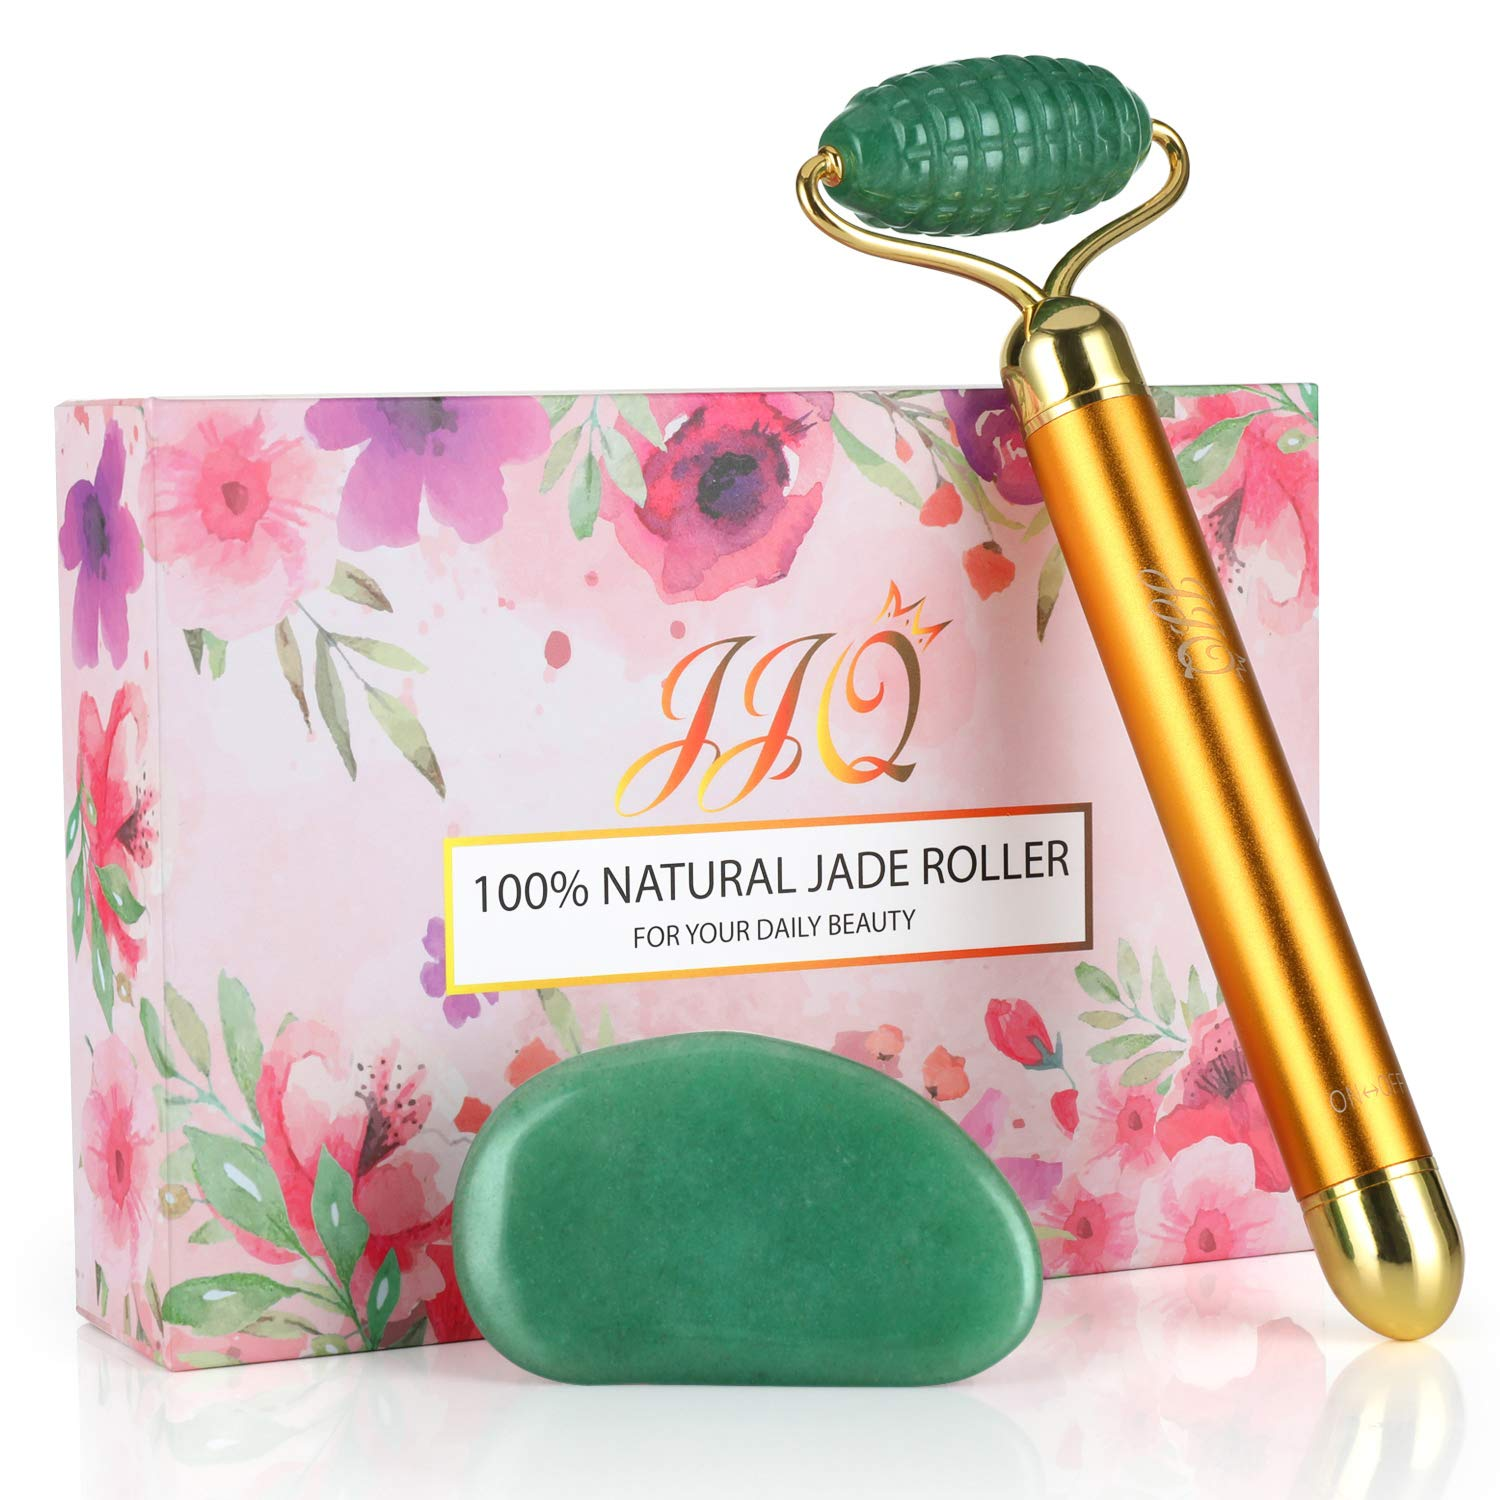 Electric 3D Jade Roller for Face and Gua Sha Set, IIQ Natural Jade Stone Skin/Face Massager Tool for Anti Aging,Eye Puffiness Wrinkles,Skincare Massage Tools for Face Eyes Neck Back by IIQ